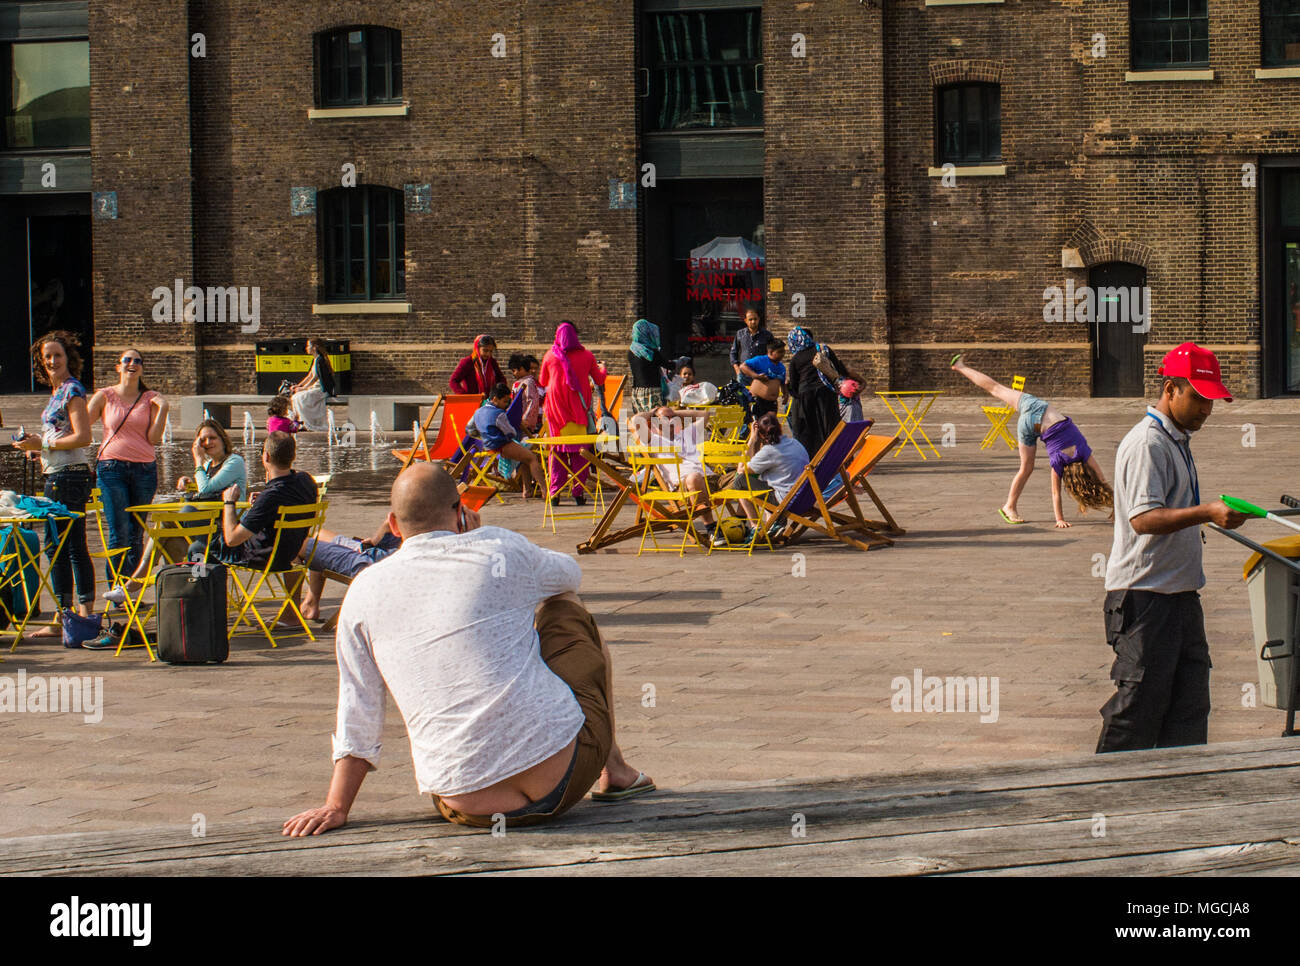 Man sitting on bench, making phone call, showing 'builders bum' rear view - Stock Image